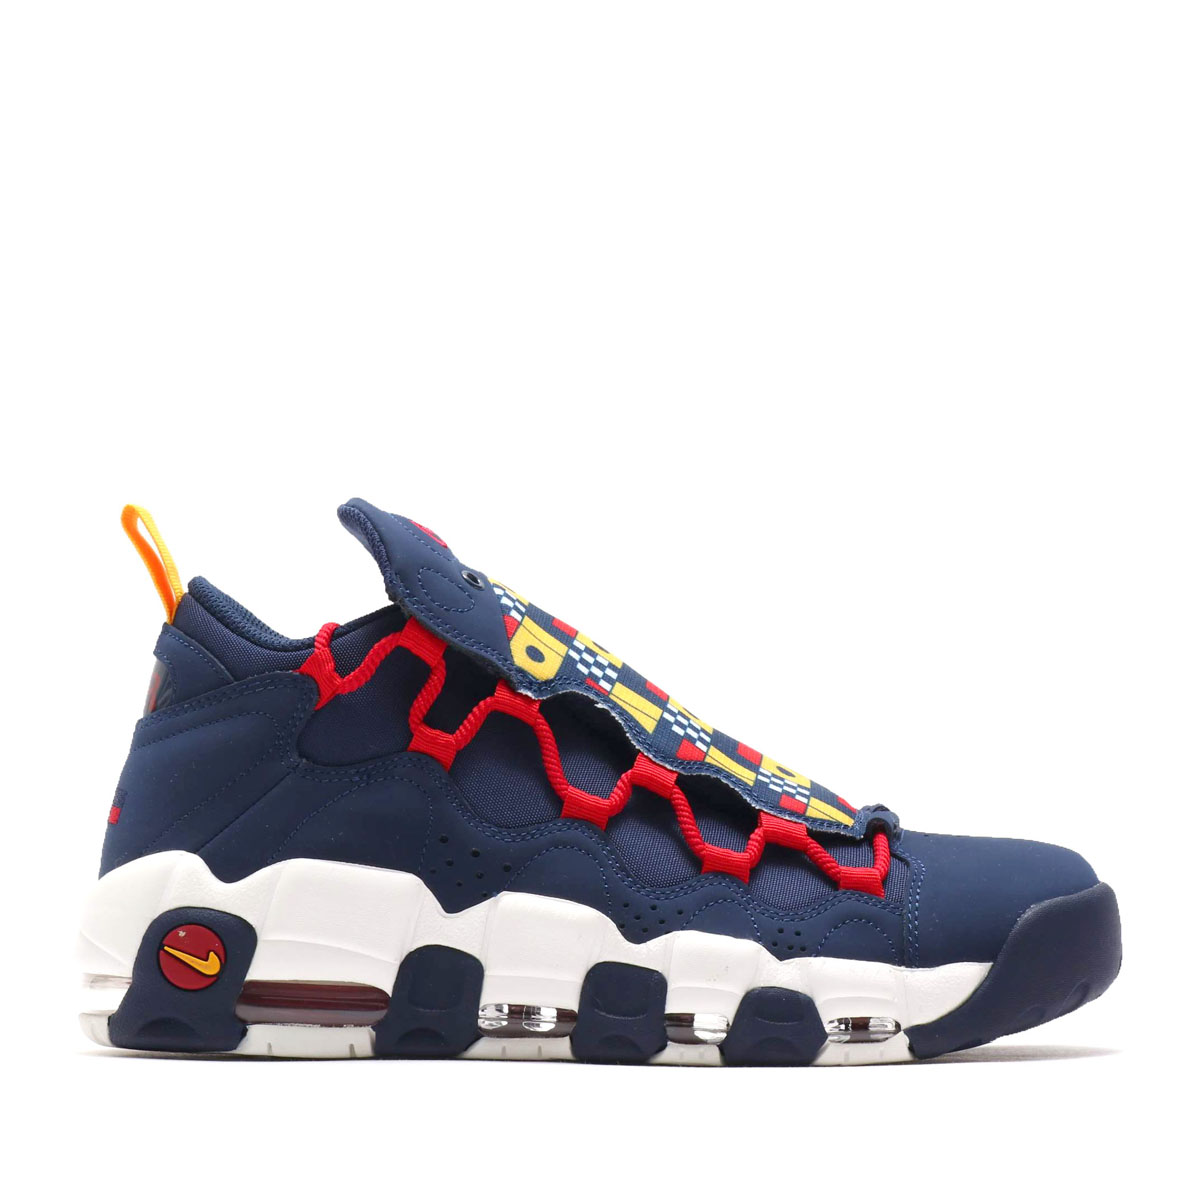 NIKE AIR MORE MONEY(MIDNIGHT NAVY/MIDNIGHT NAVY-SAIL-GYM RED)(ナイキ エア モア マニー)【メンズ】【レディース】【スニーカー】【18FA-S】